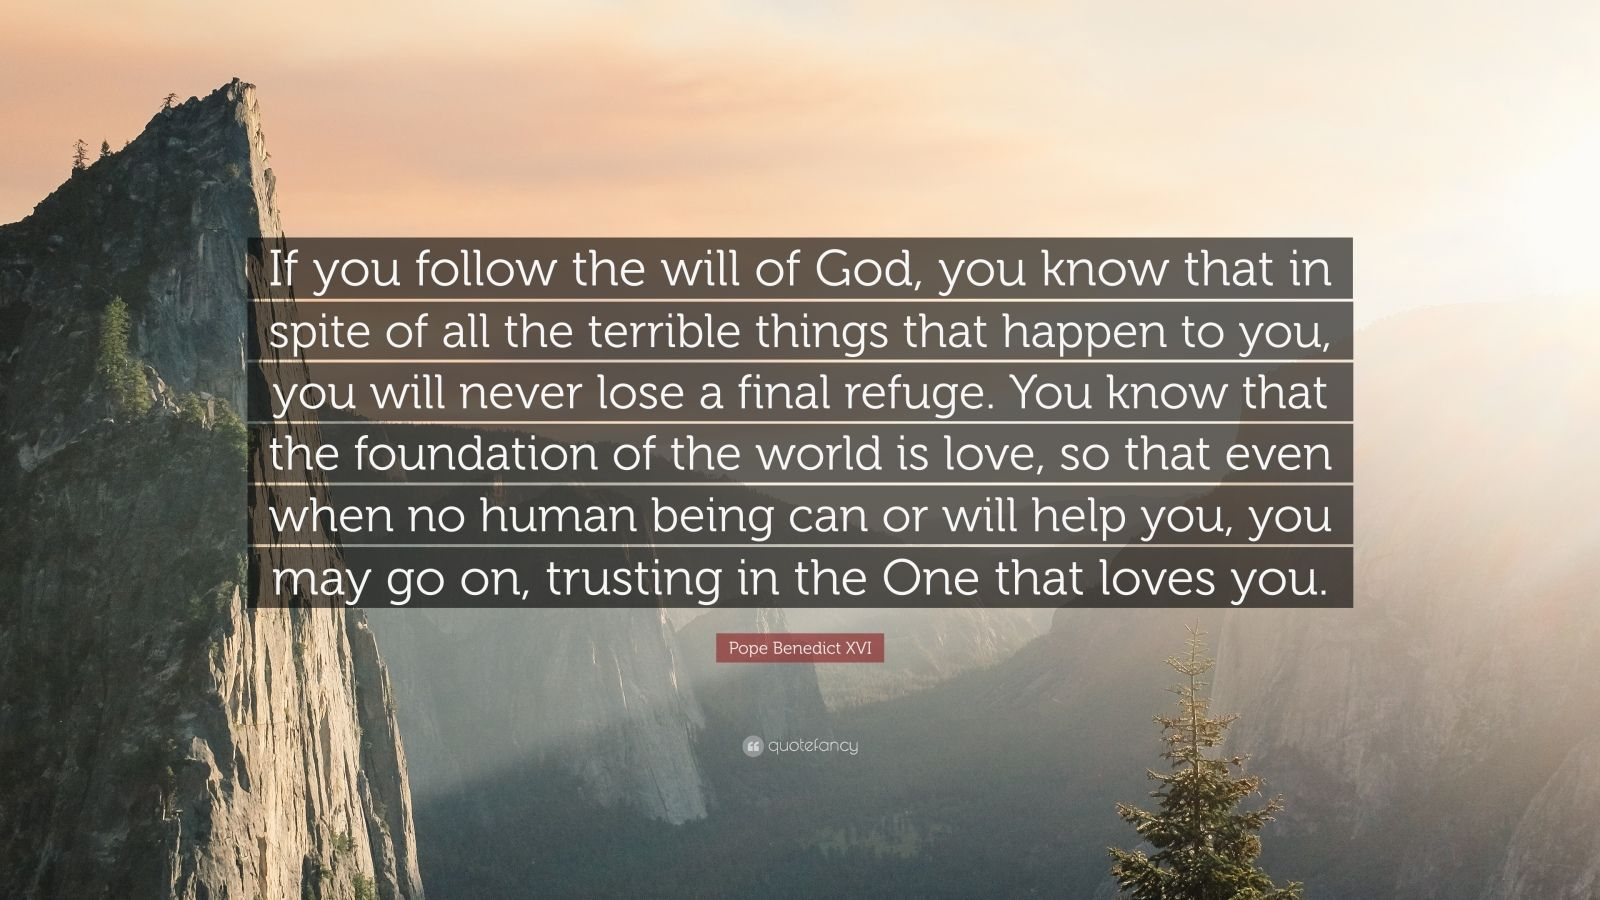 """Pope Benedict XVI Quote: """"If you follow the will of God, you know that in spite of all the terrible things that happen to you, you will never lose a final refuge. You know that the foundation of the world is love, so that even when no human being can or will help you, you may go on, trusting in the One that loves you."""""""